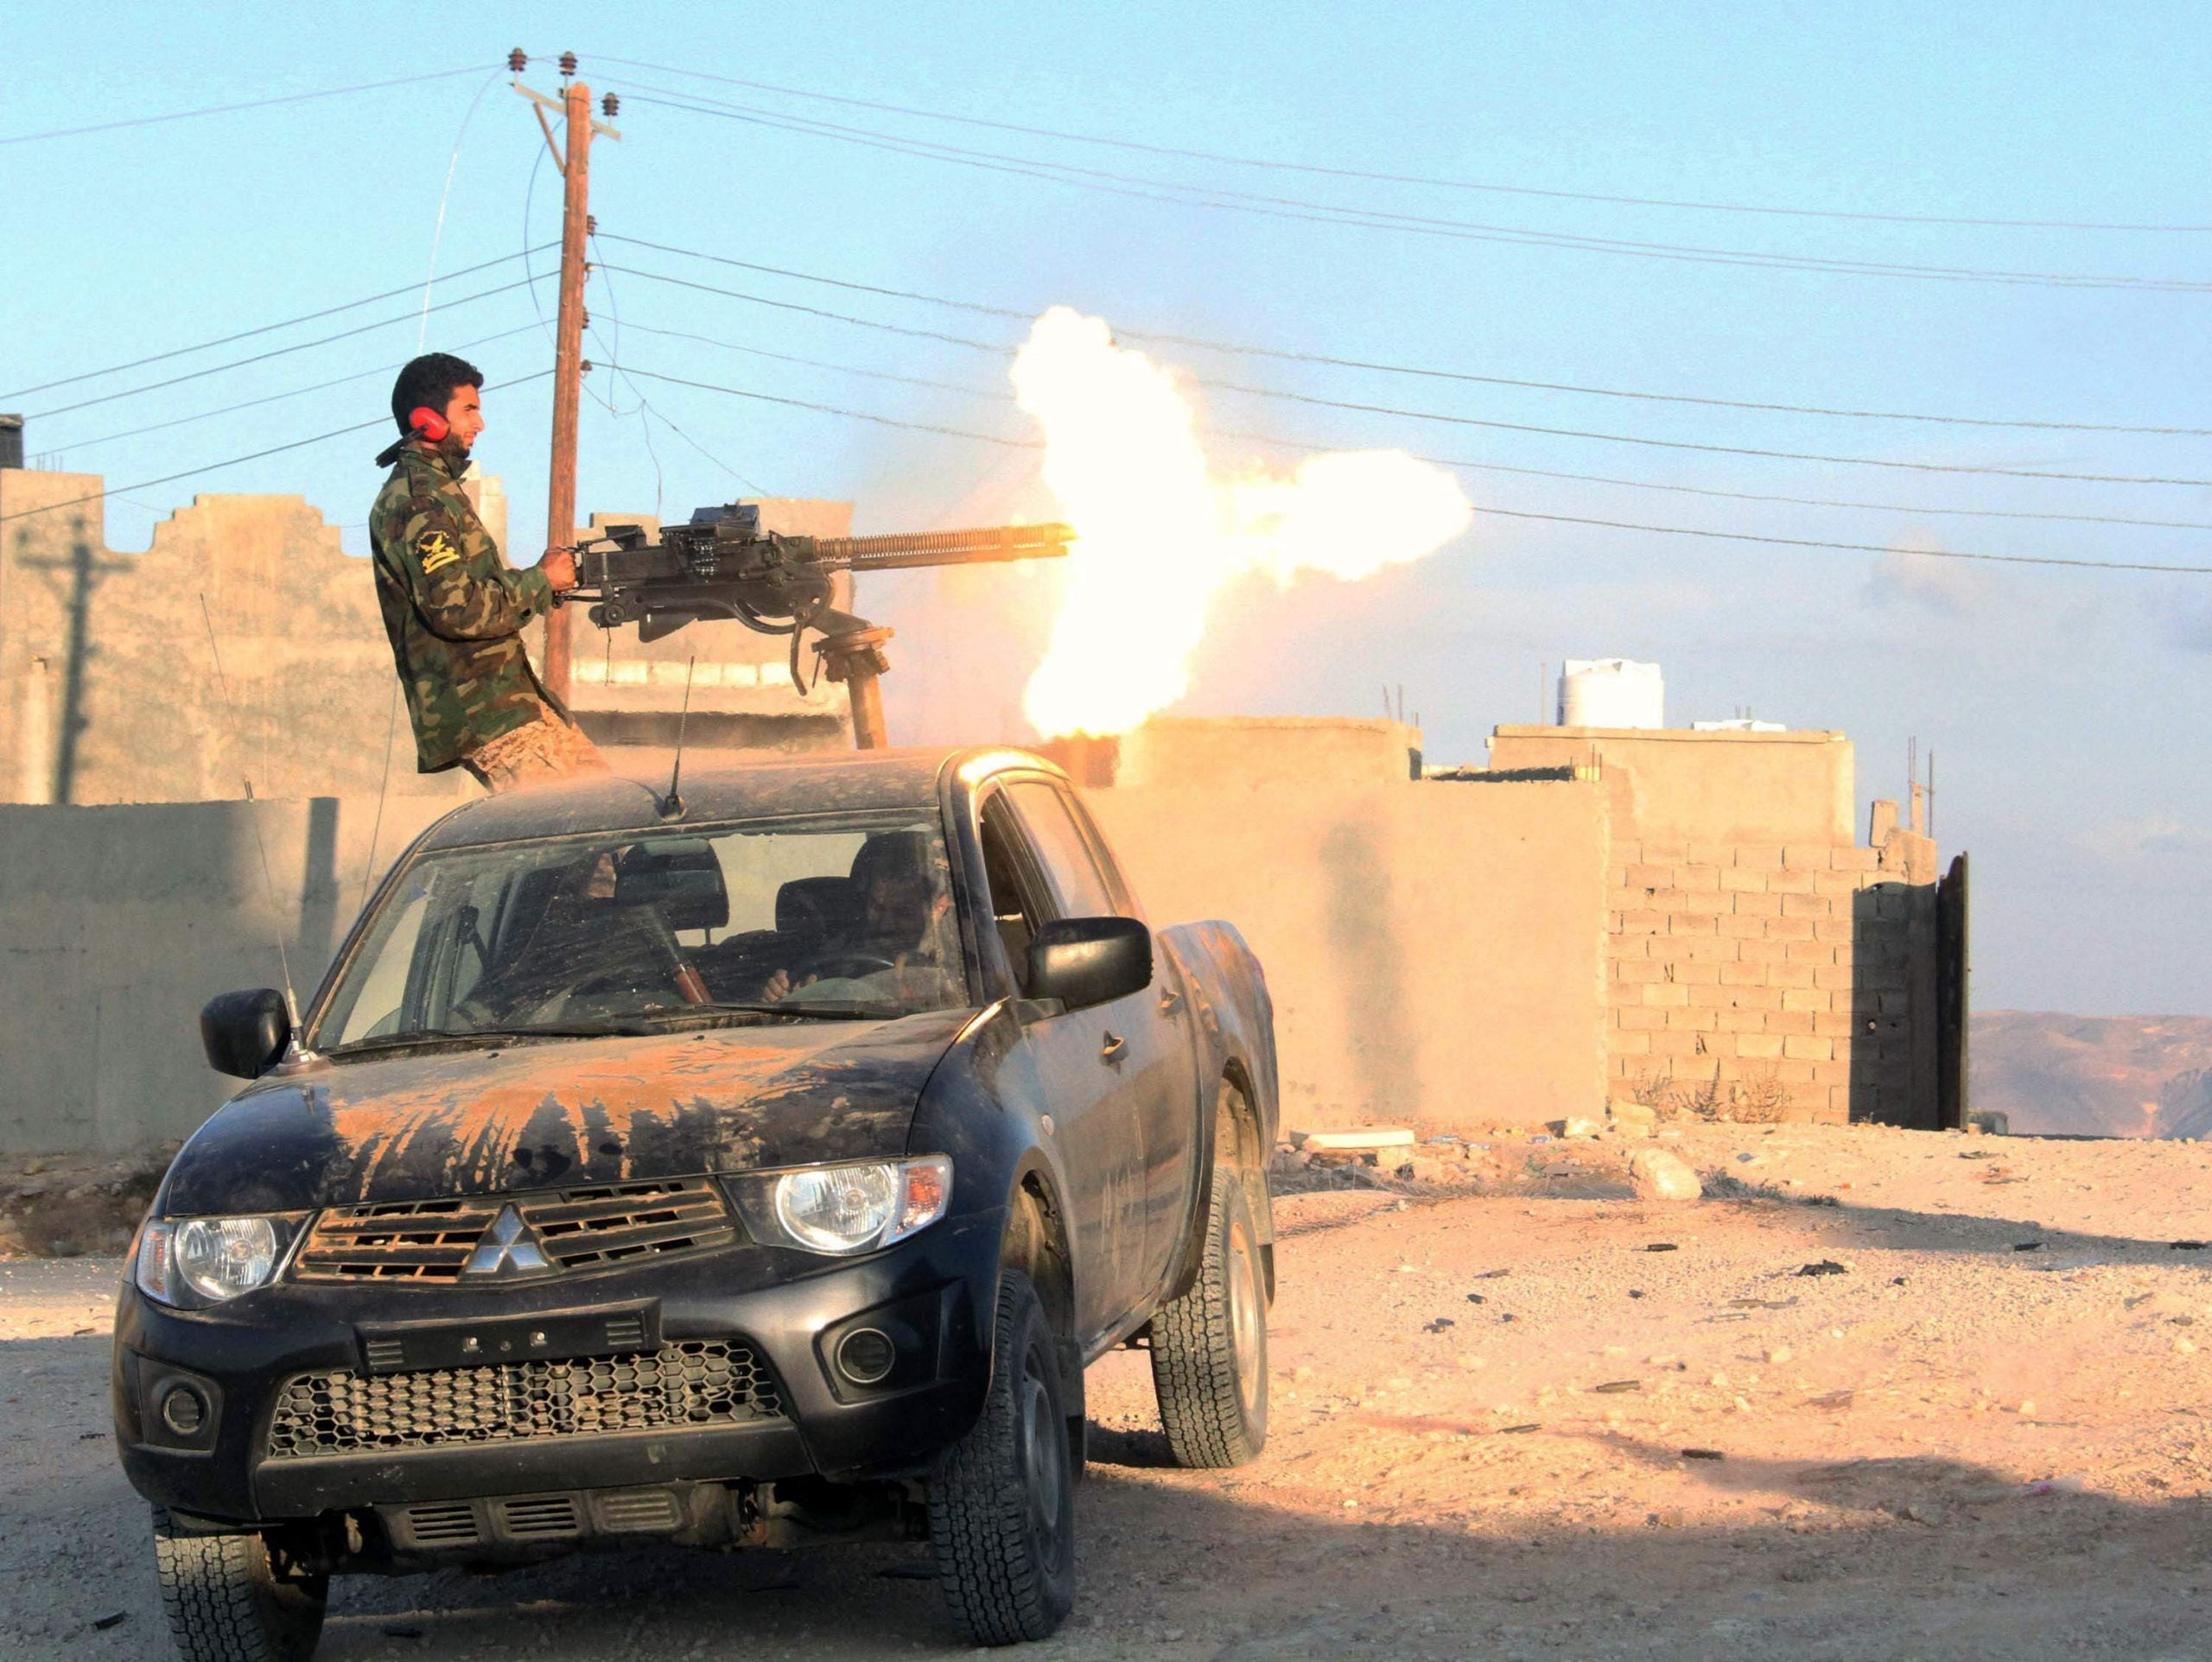 To combat Islamic State, the world's leaders need to restore order to Libya